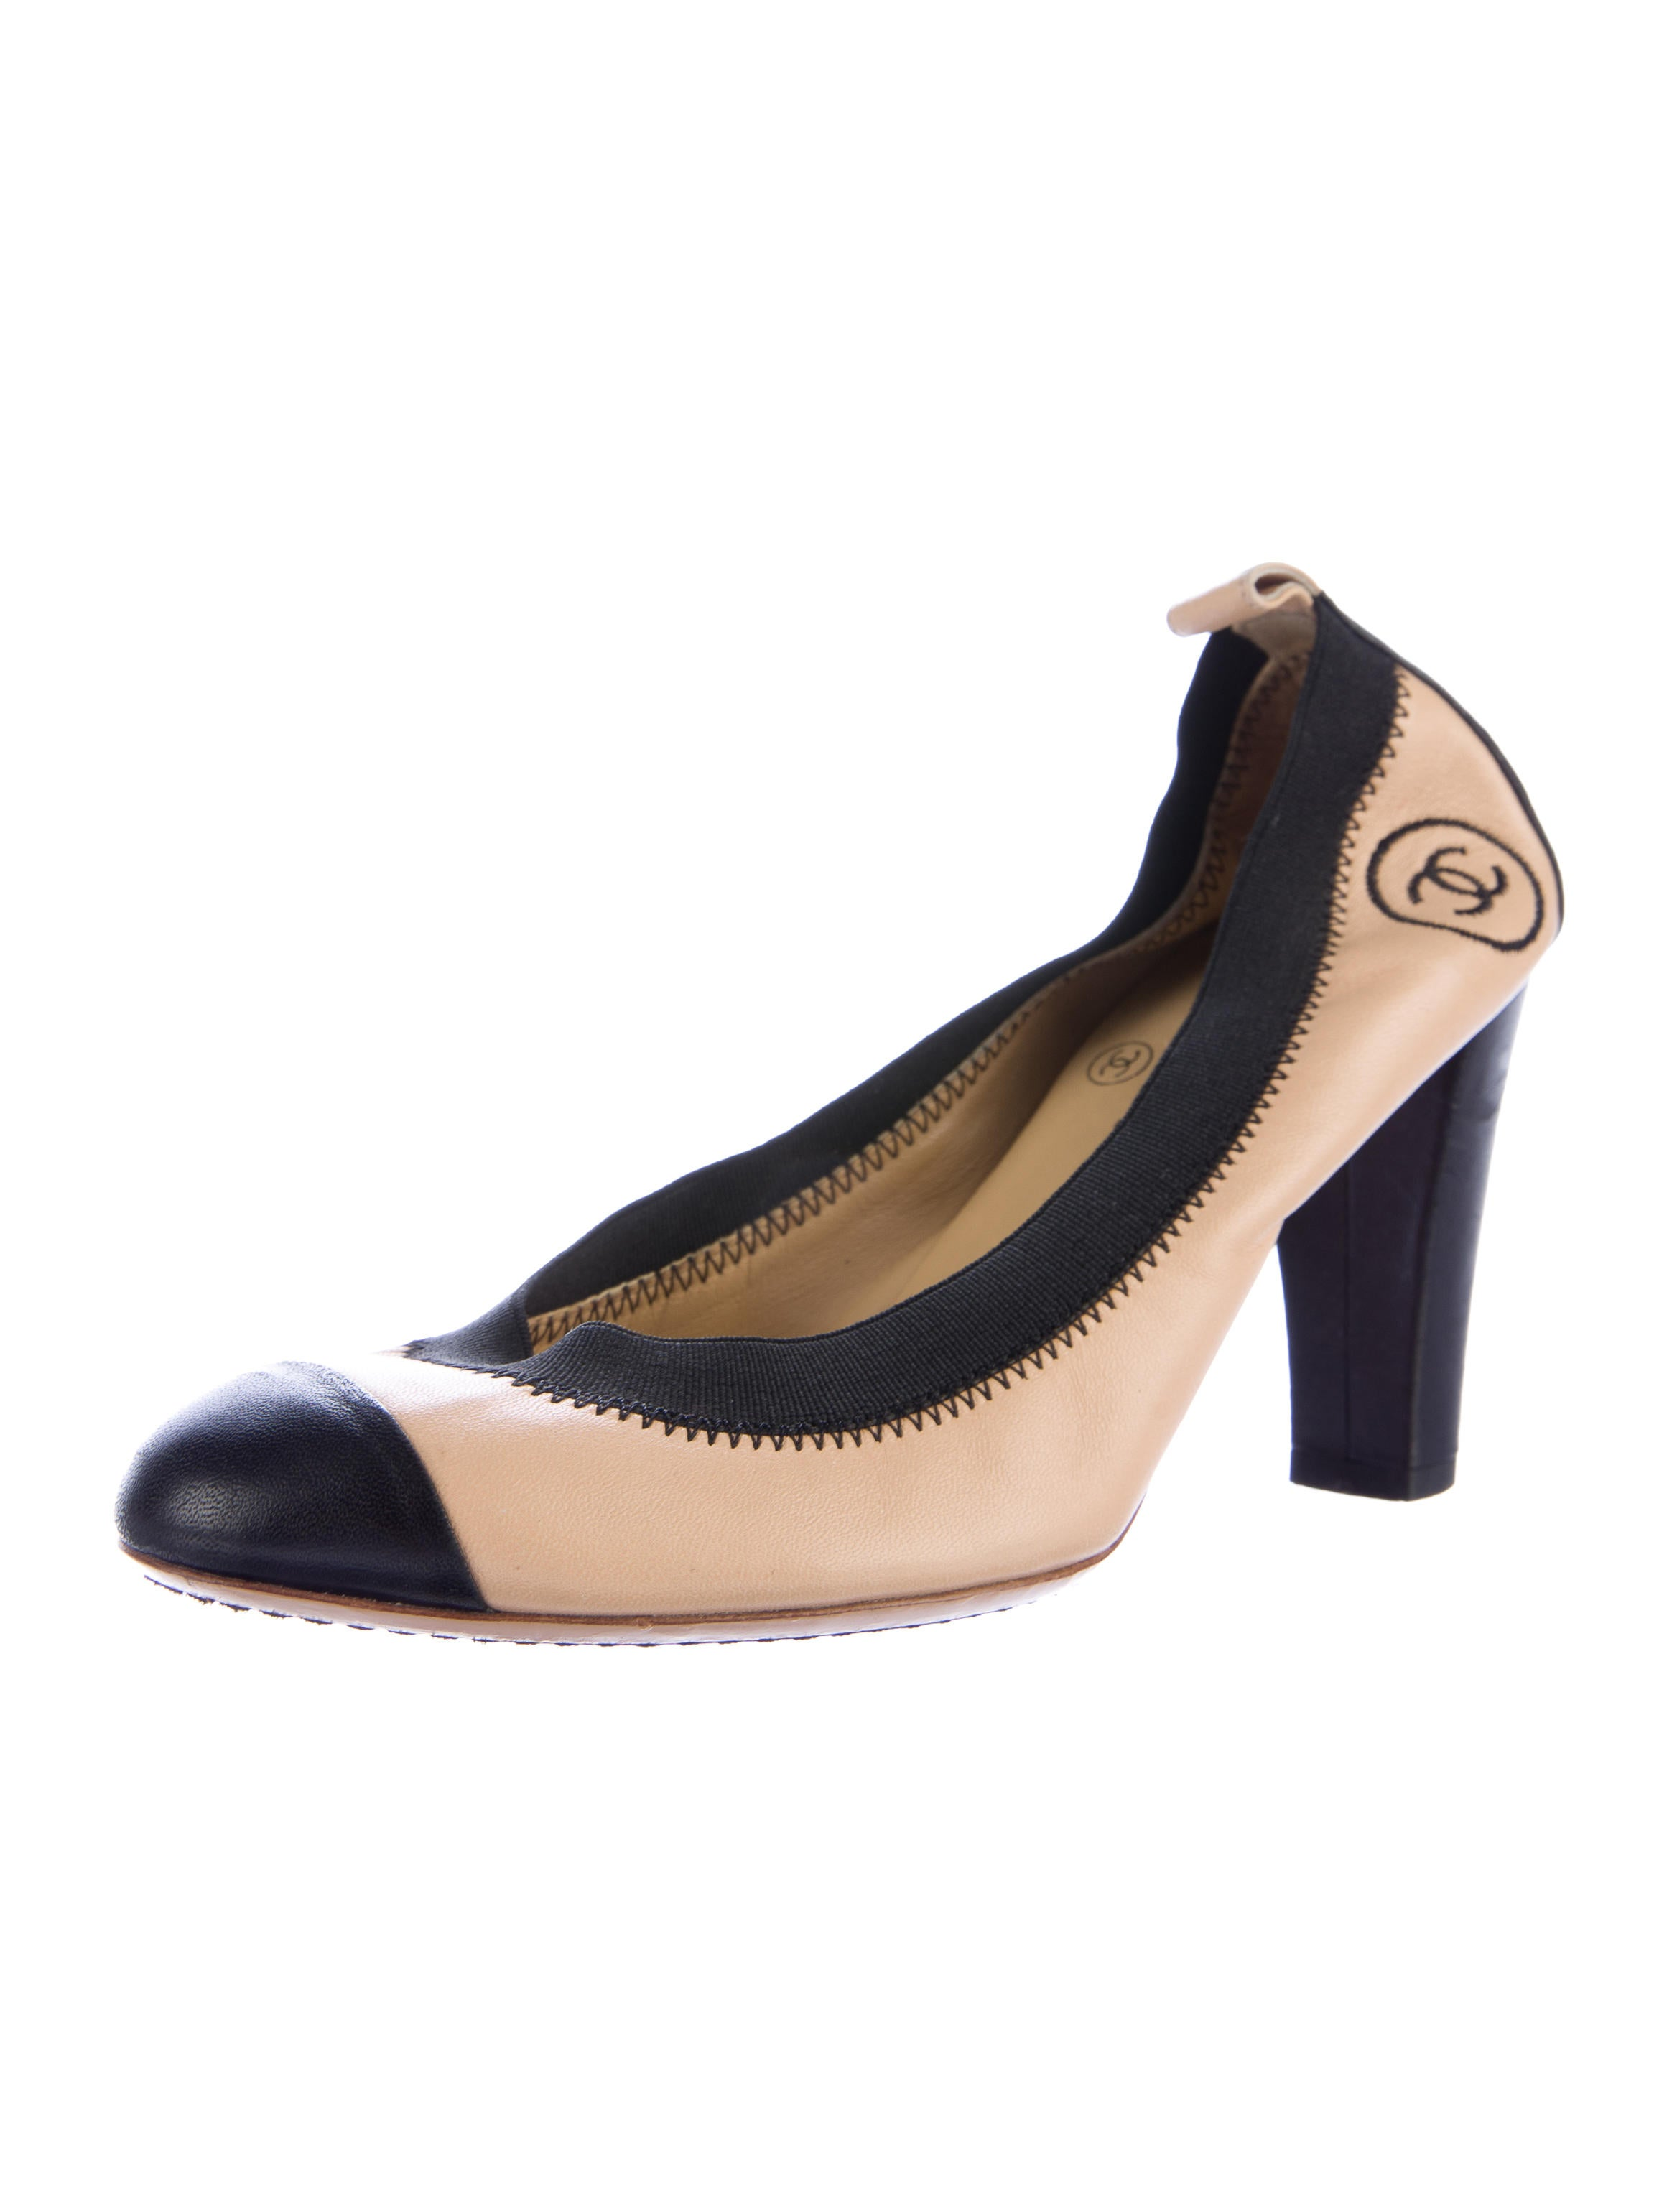 chanel leather stretch spirit pumps shoes cha160977